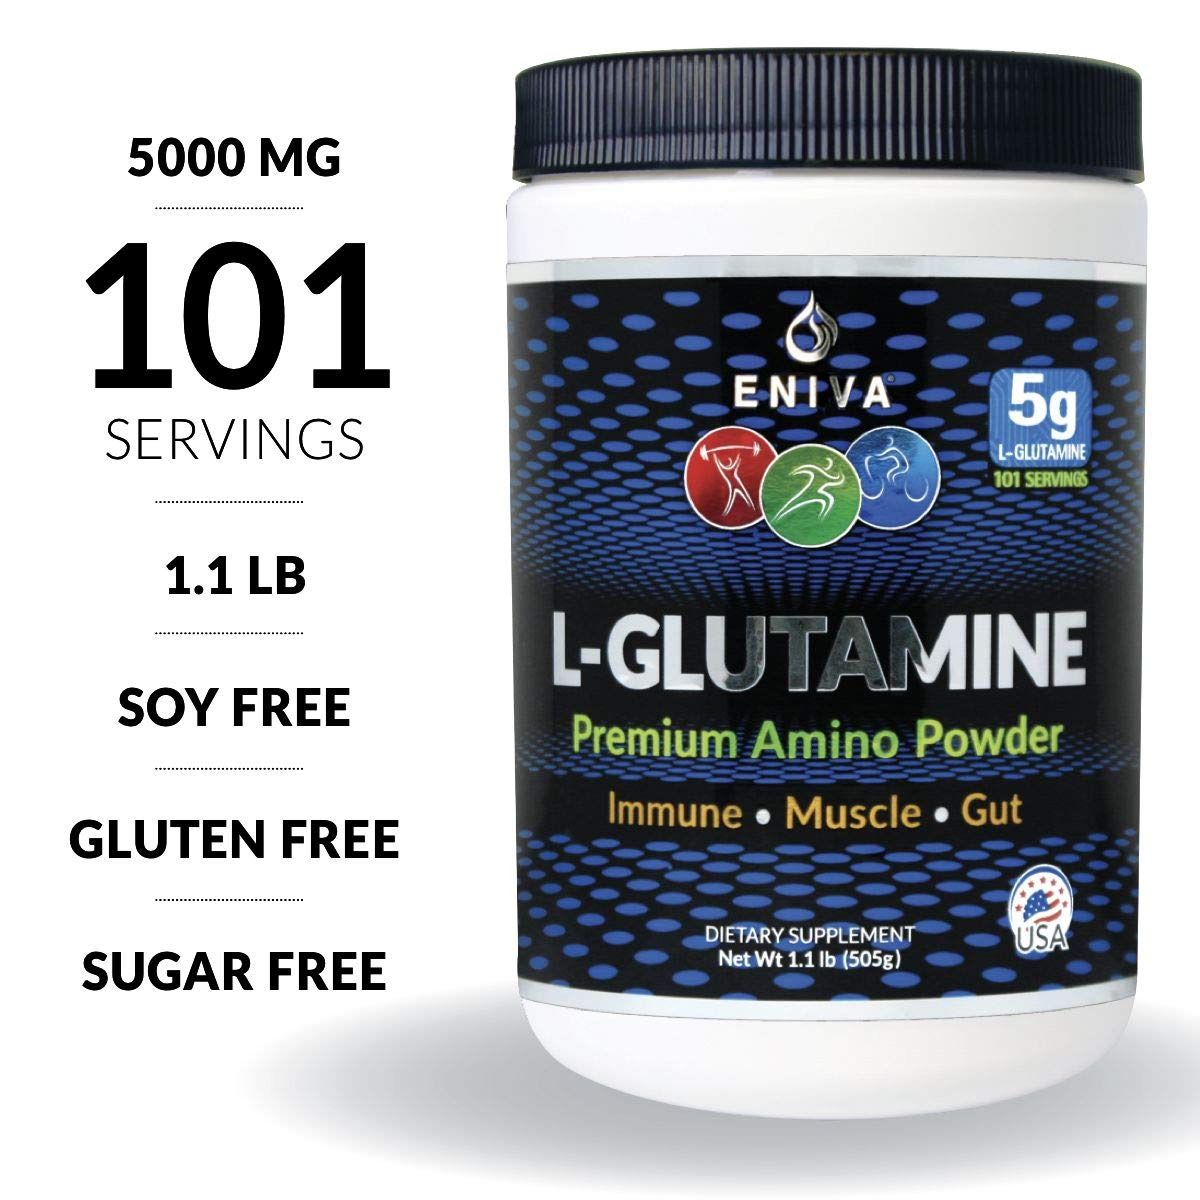 Eniva L-Glutamine Powder, 1.1-Pound, MAX Value 5000MG, 101 Servings. Micronized. Gluten Free. Non-GMO. Soy Free. Zero Sugar. Muscle Recovery, Immune Support and Amino Acid for Gut. by Eniva Health